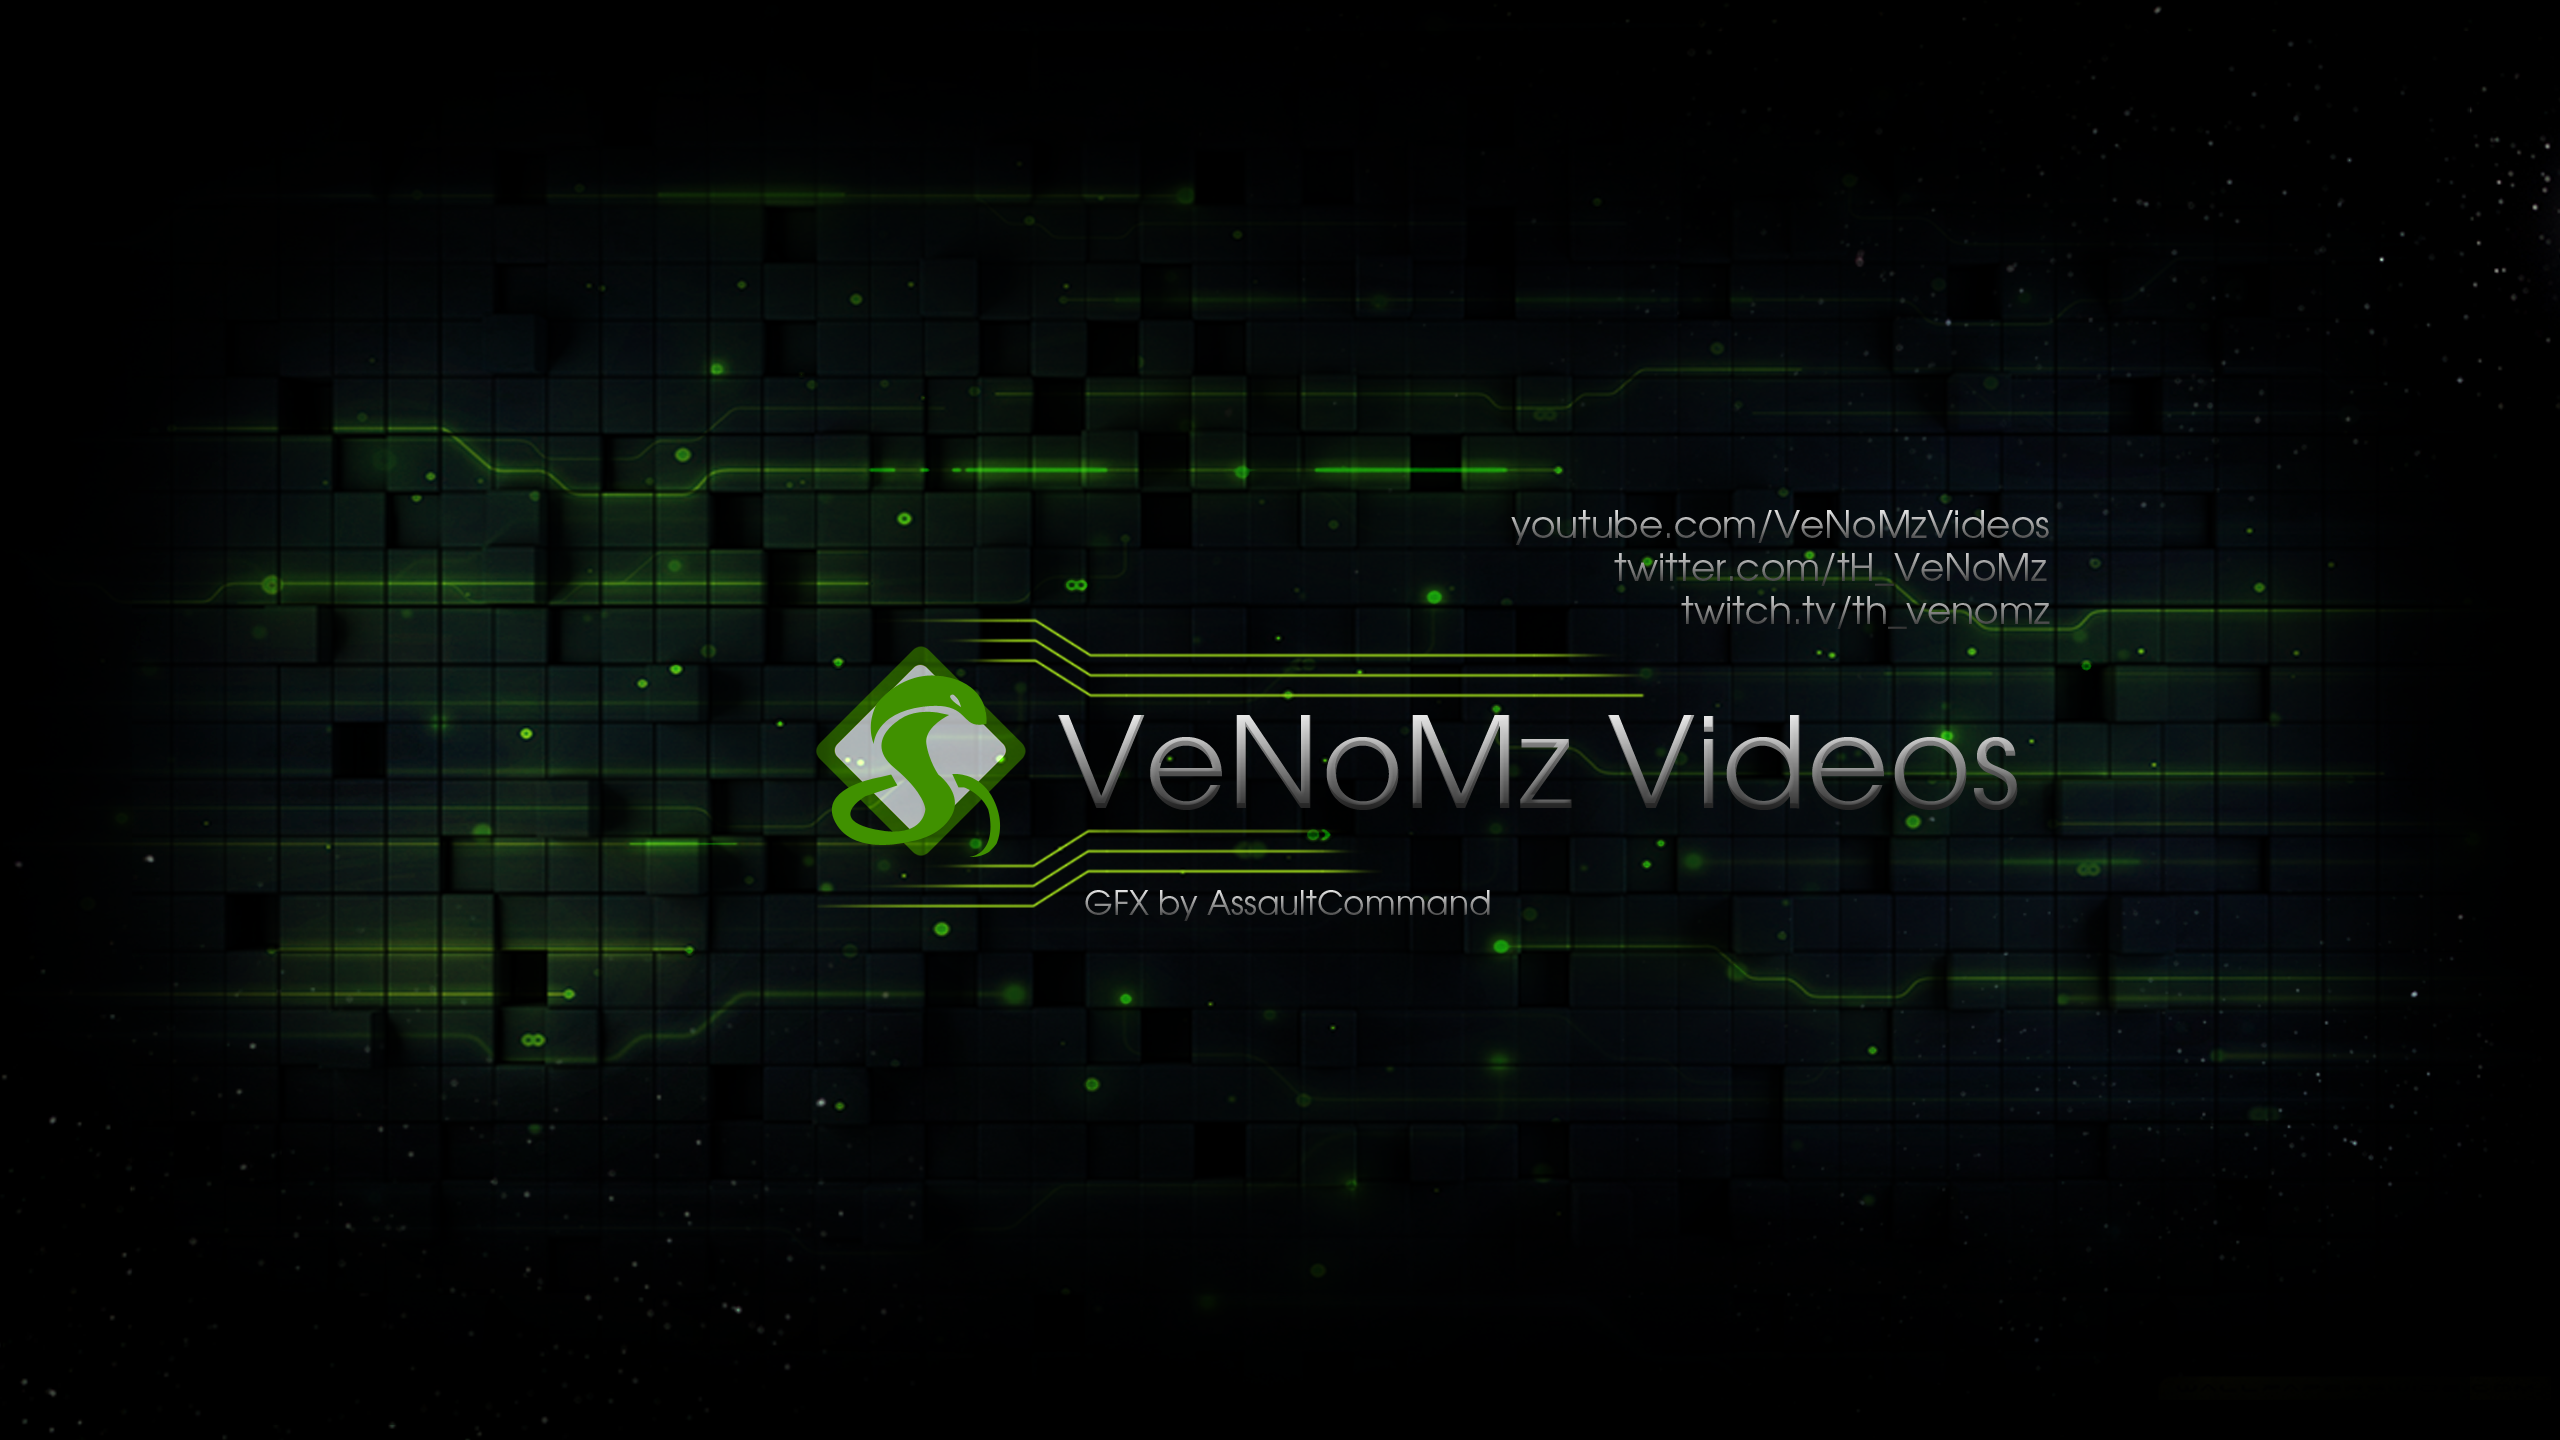 VeNoMz Videos - Youtube banner/Wallpaper by Floodgrunt on DeviantArt